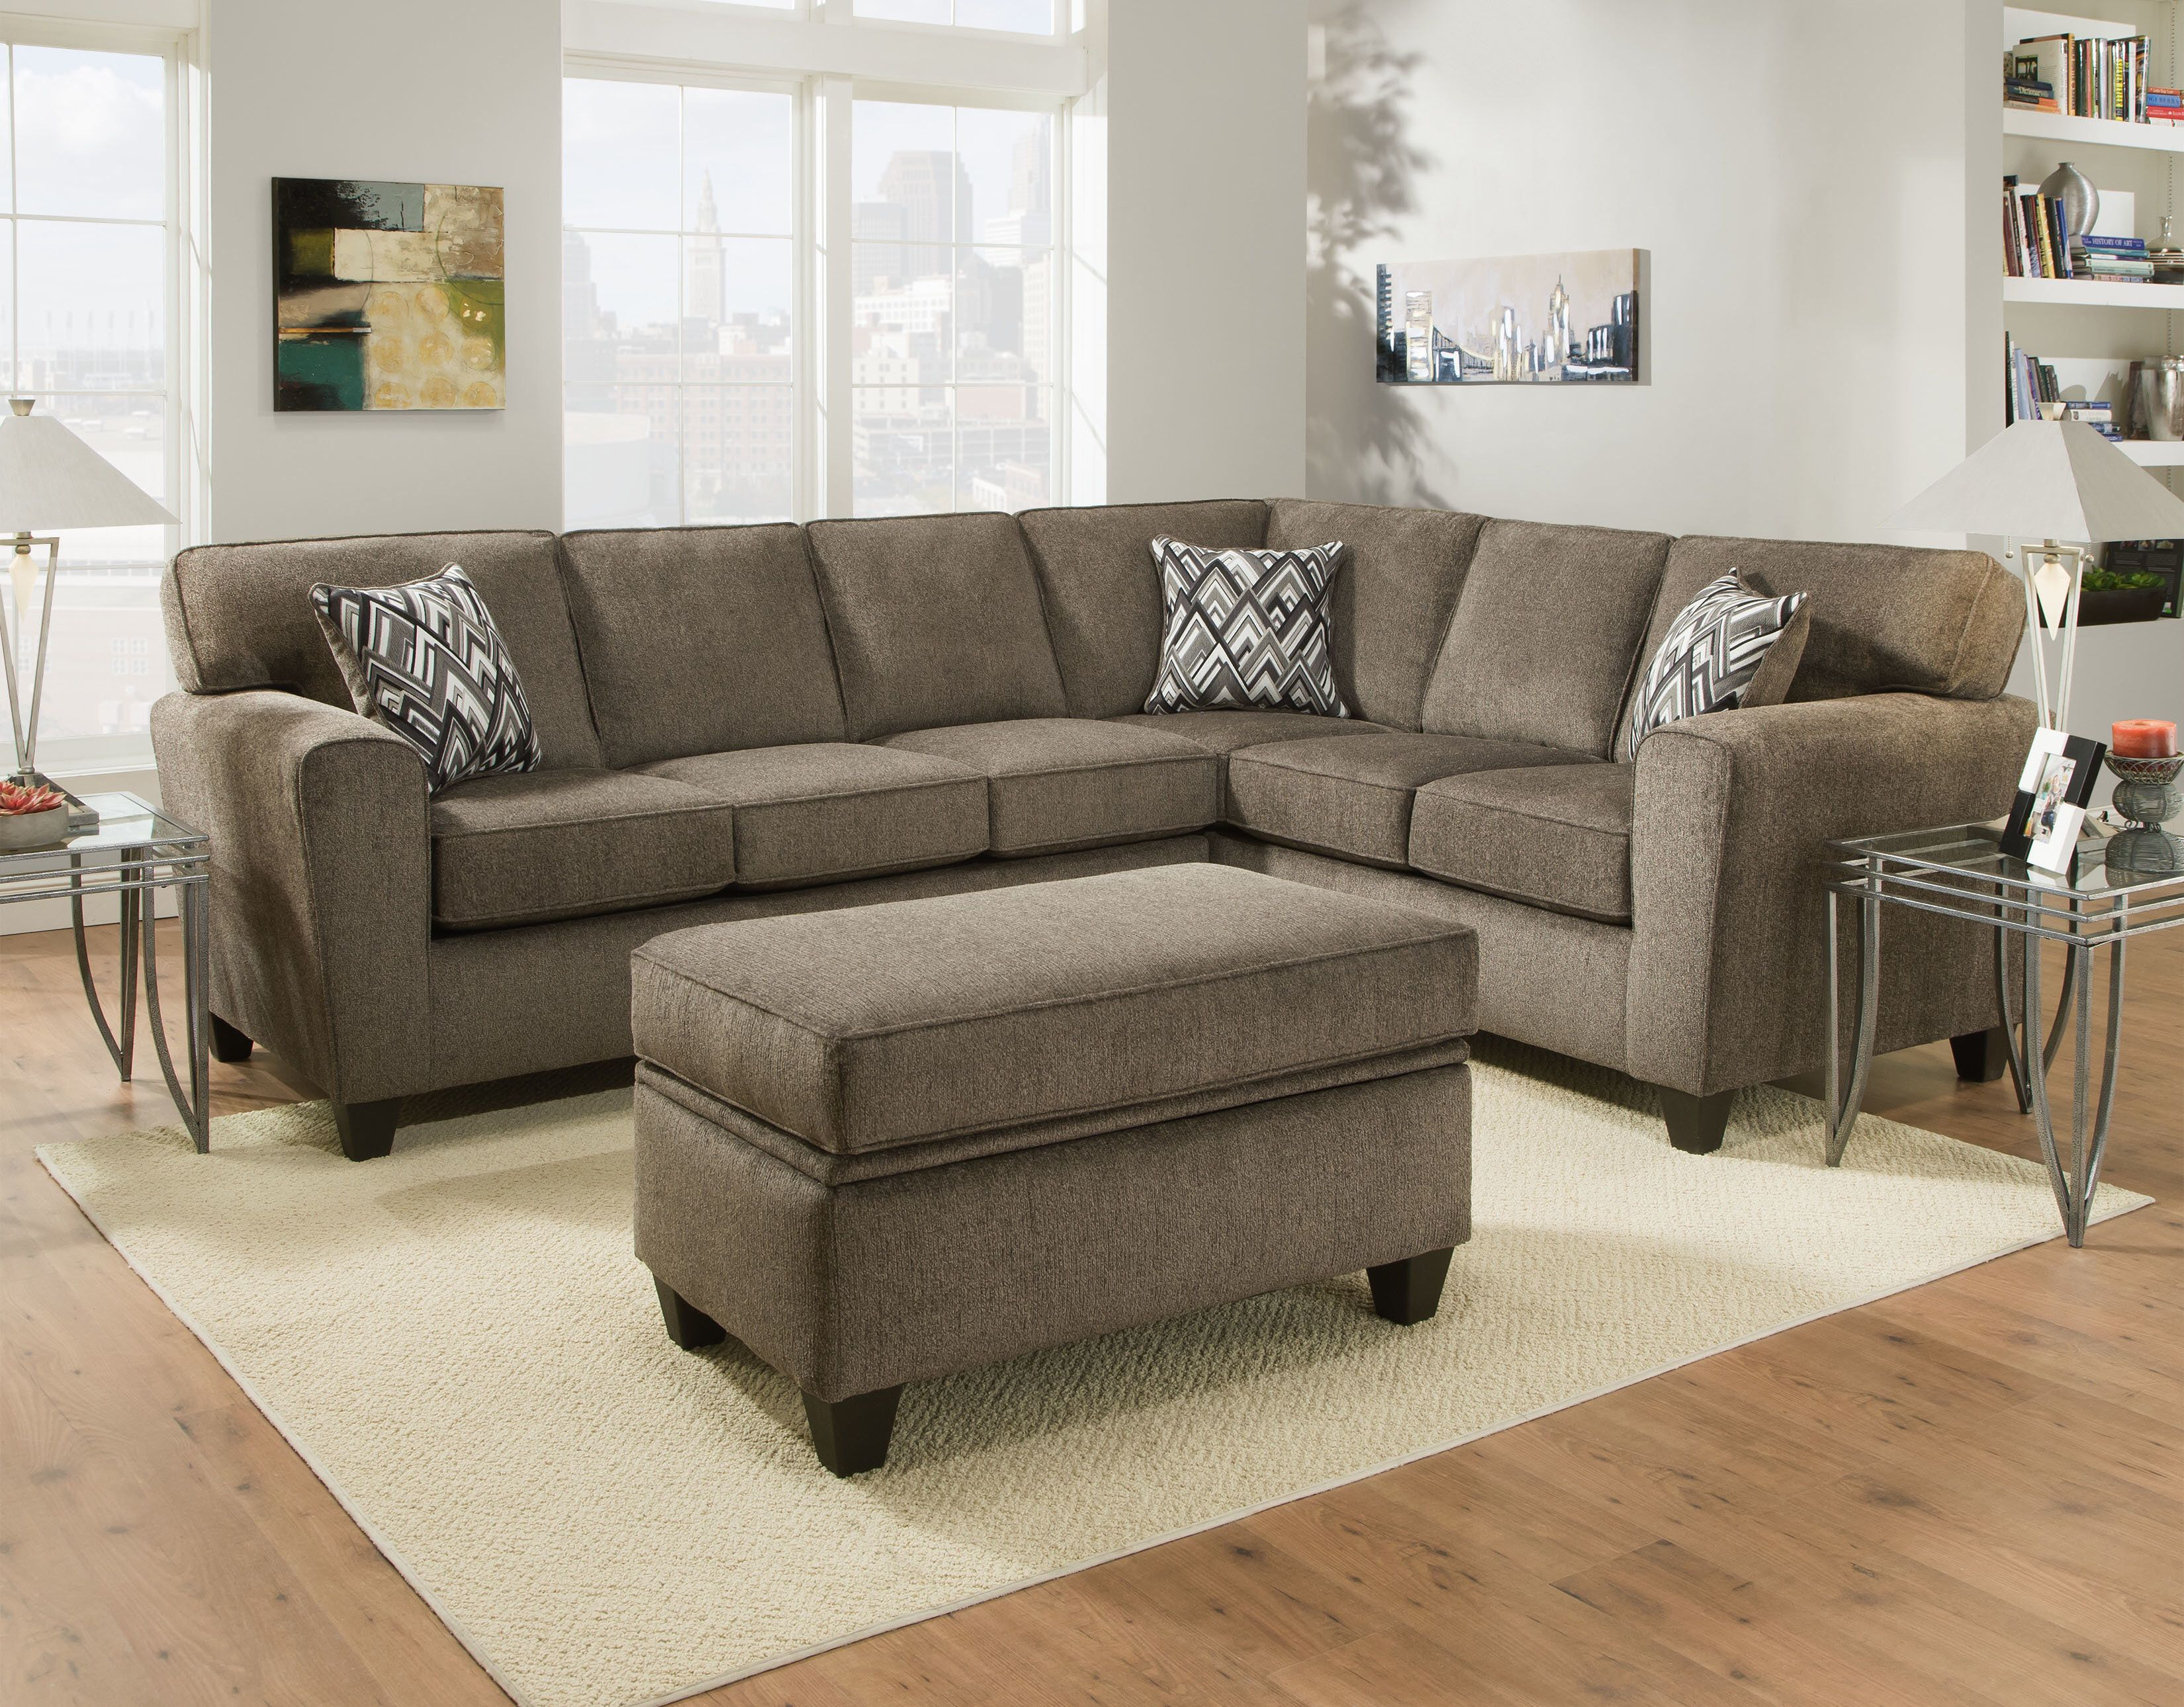 Pleasing Ashton Right Hand Facing Sectional Living Room In 2019 Beatyapartments Chair Design Images Beatyapartmentscom